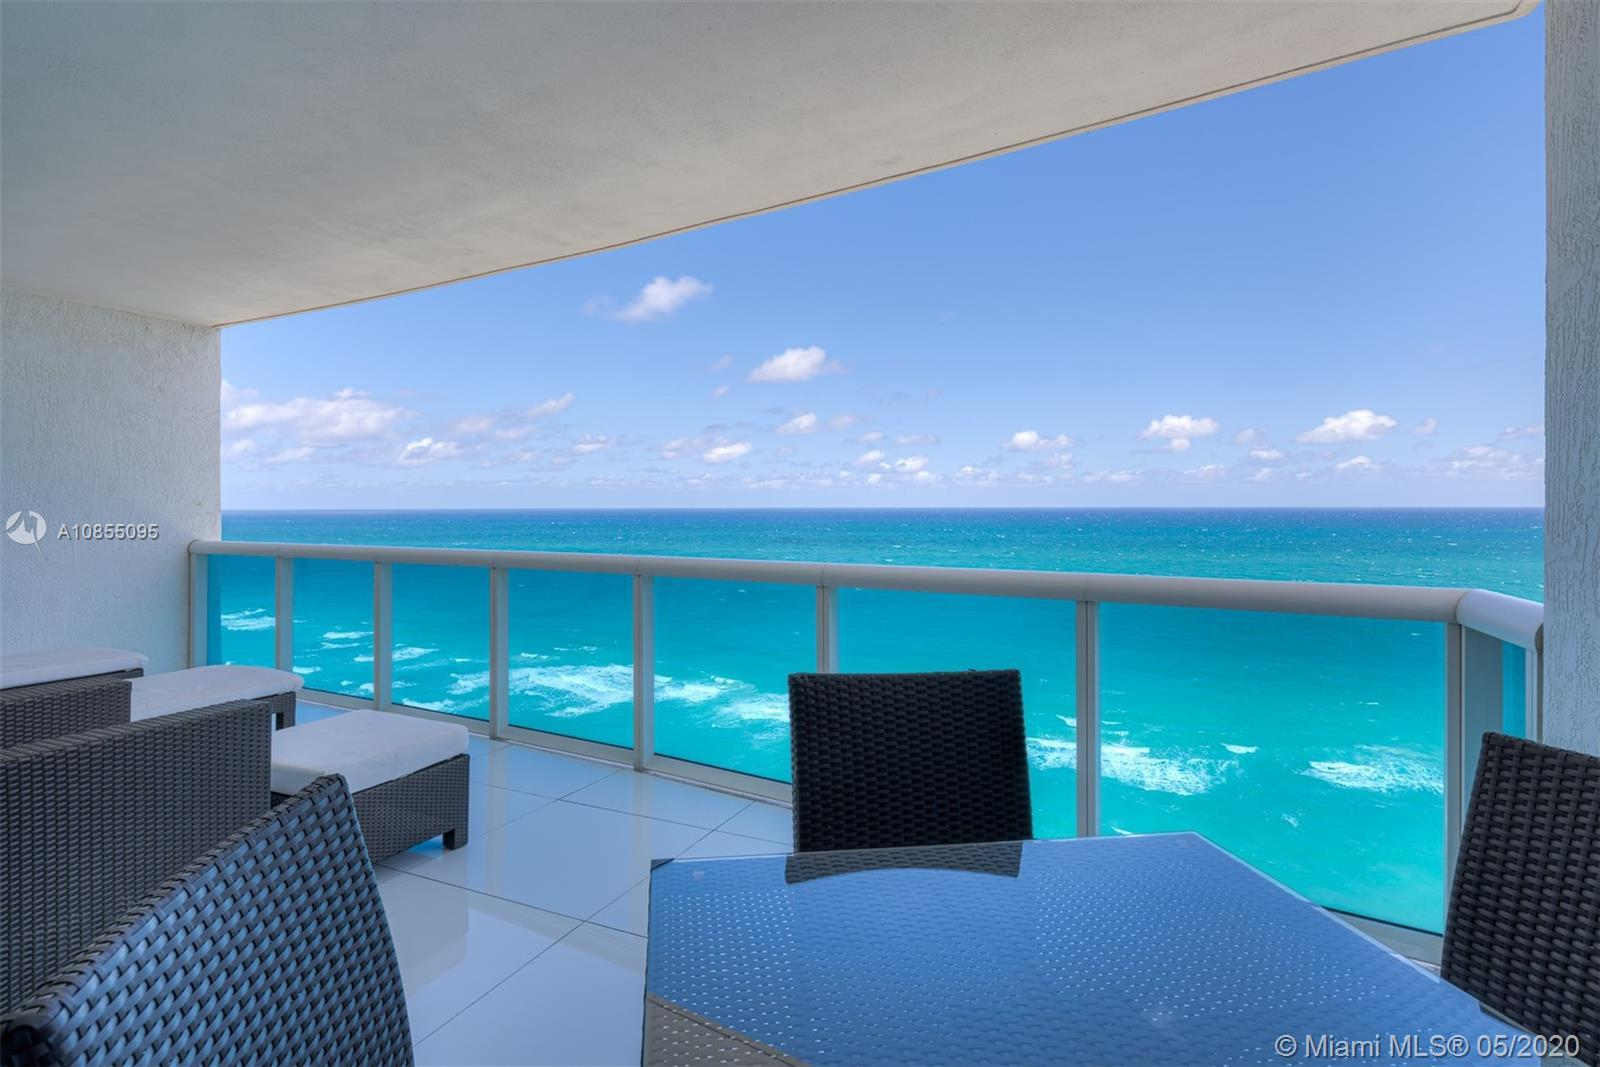 Impeccable fully furnished residence with direct ocean views. Wonderful flow-through floorplan with